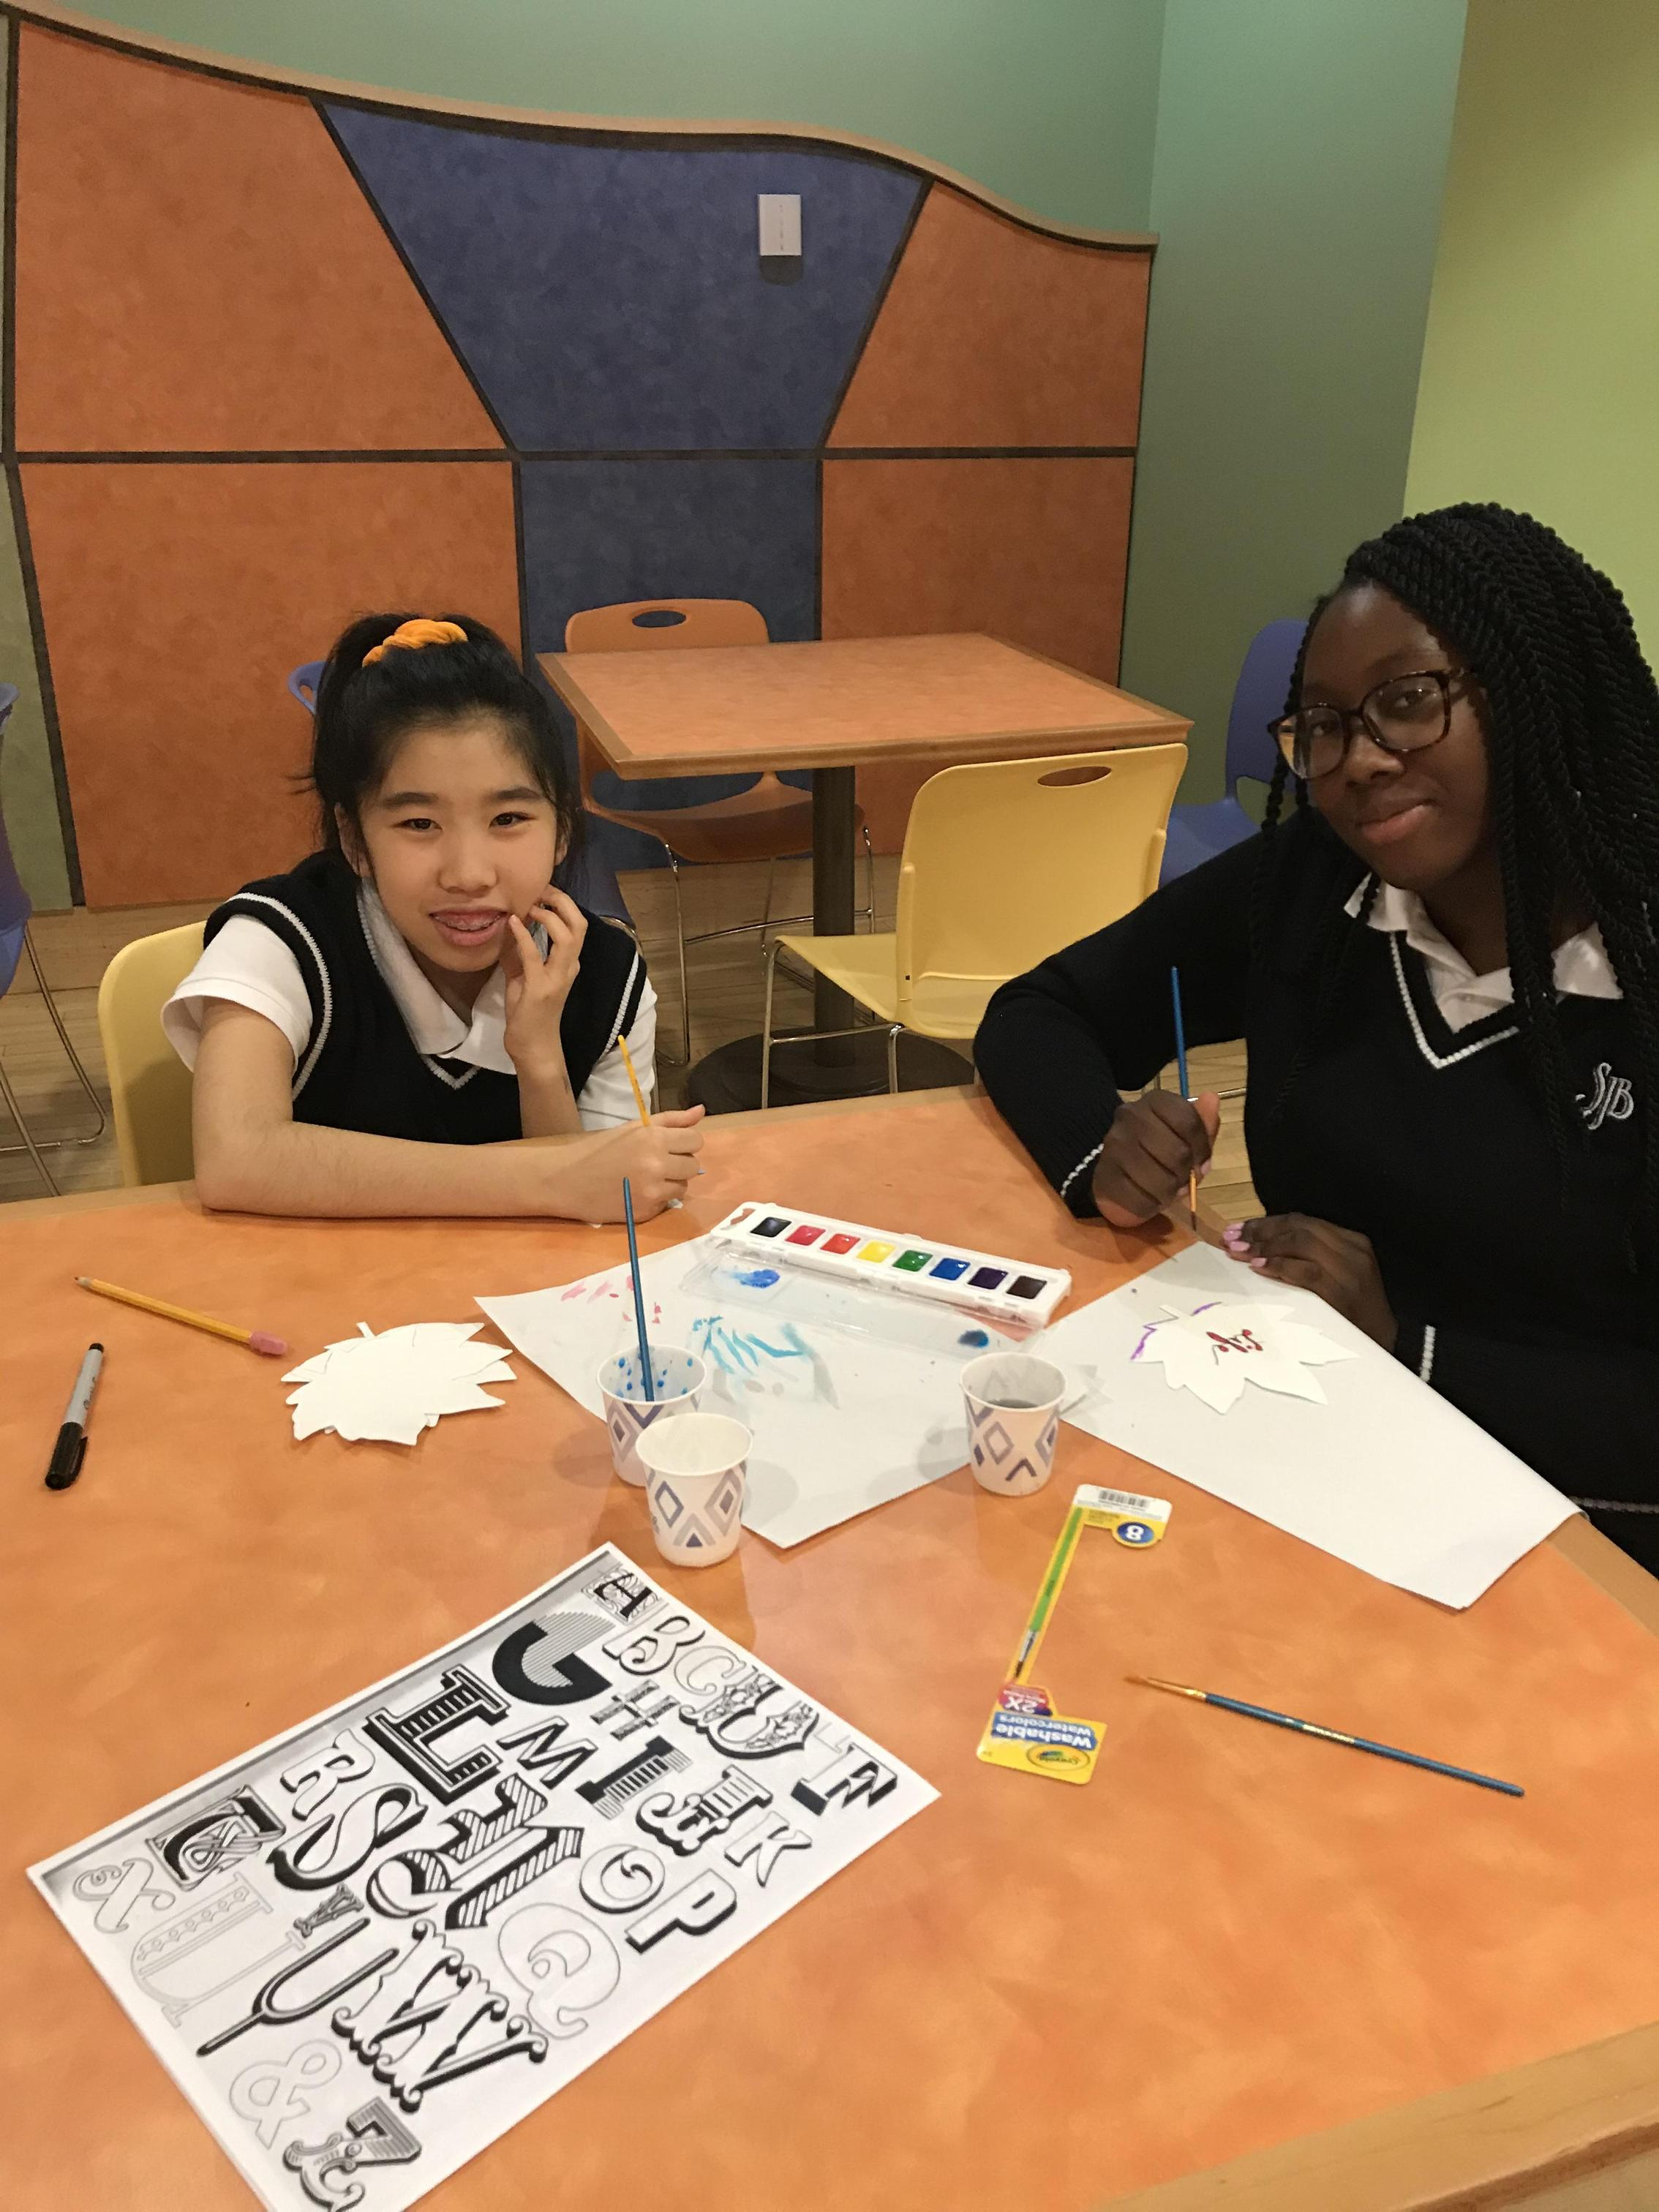 Two girls sit at table with art supplies